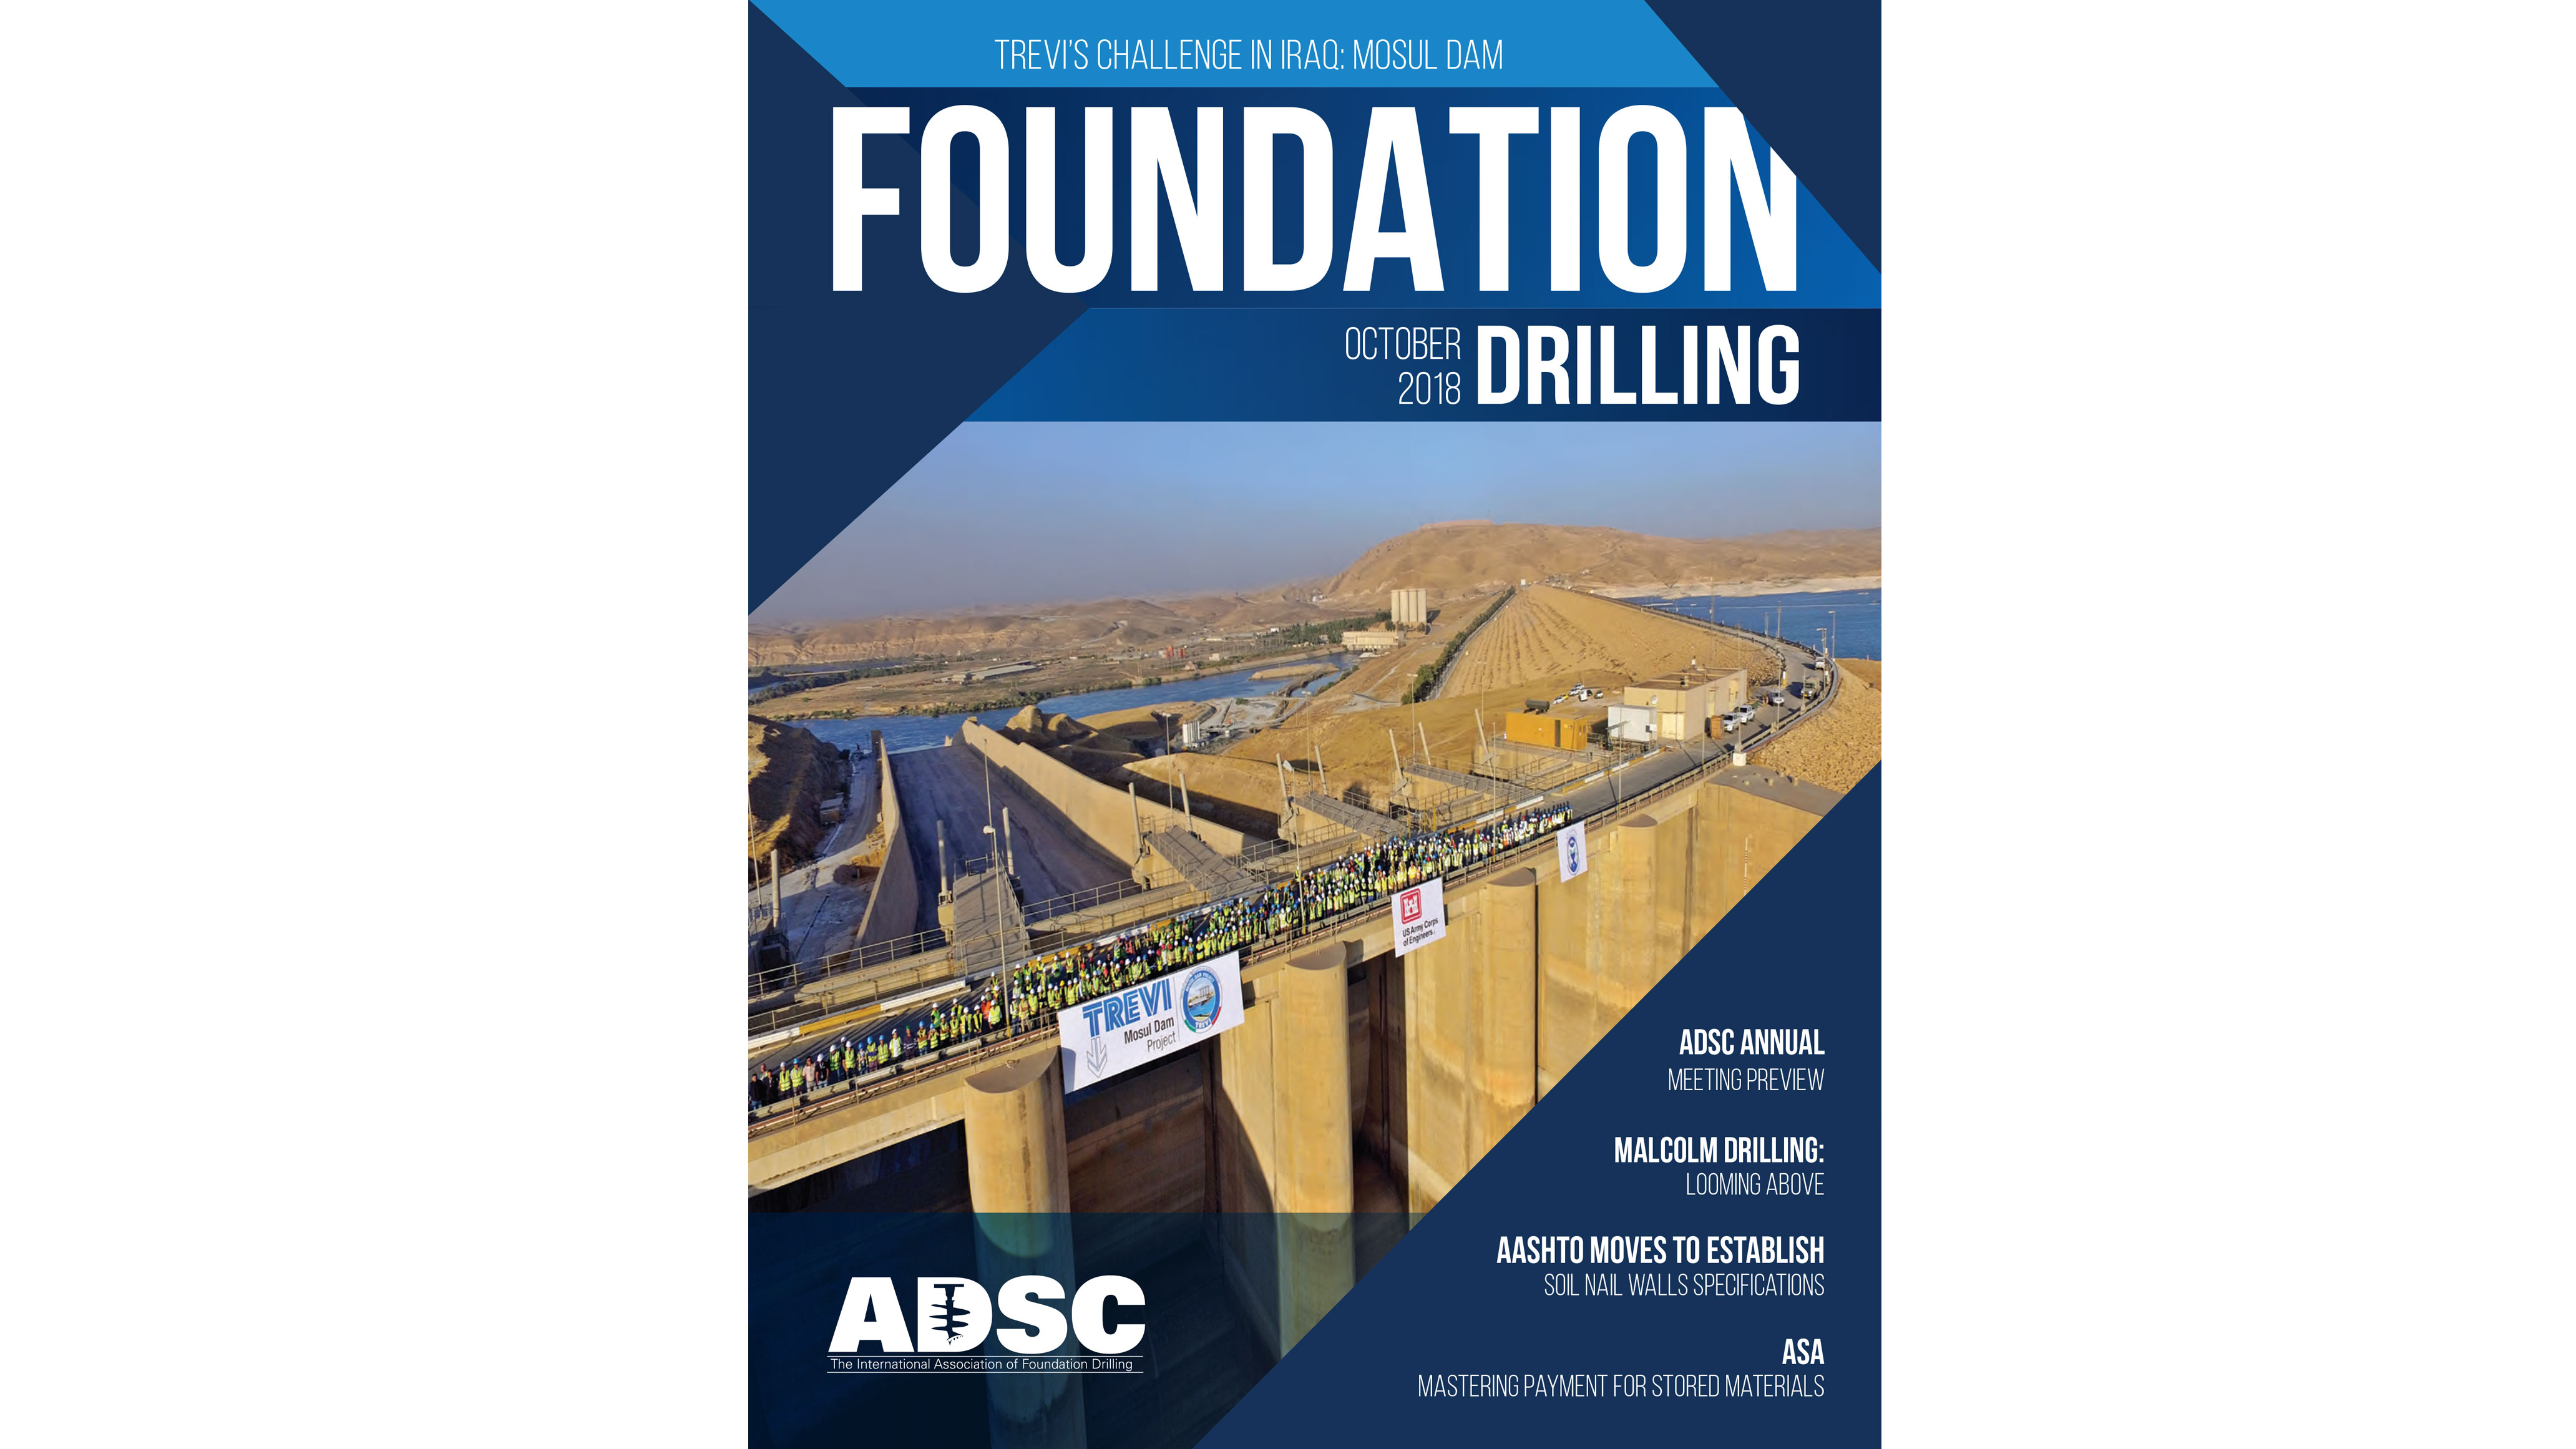 MOSUL JOBSITE ON THE COVER OF ADSC FOUNDATION DRILLING MAGAZINE | Trevi Spa 1